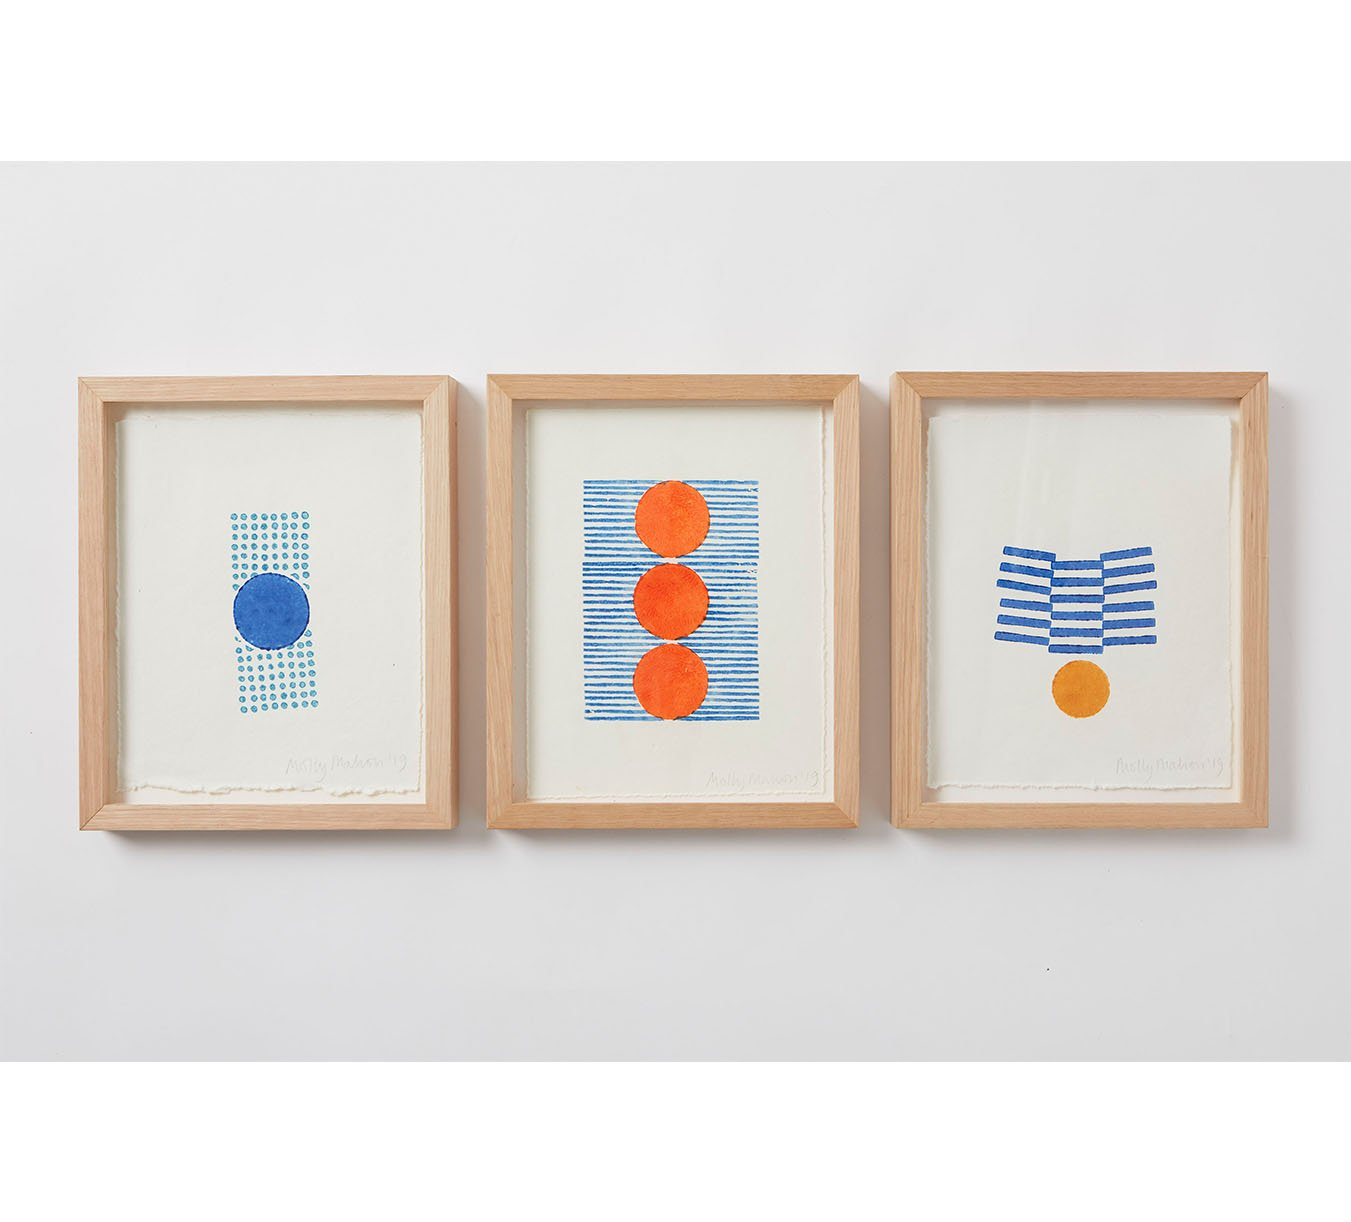 Framed - Cotton Paper Print - Trio 10